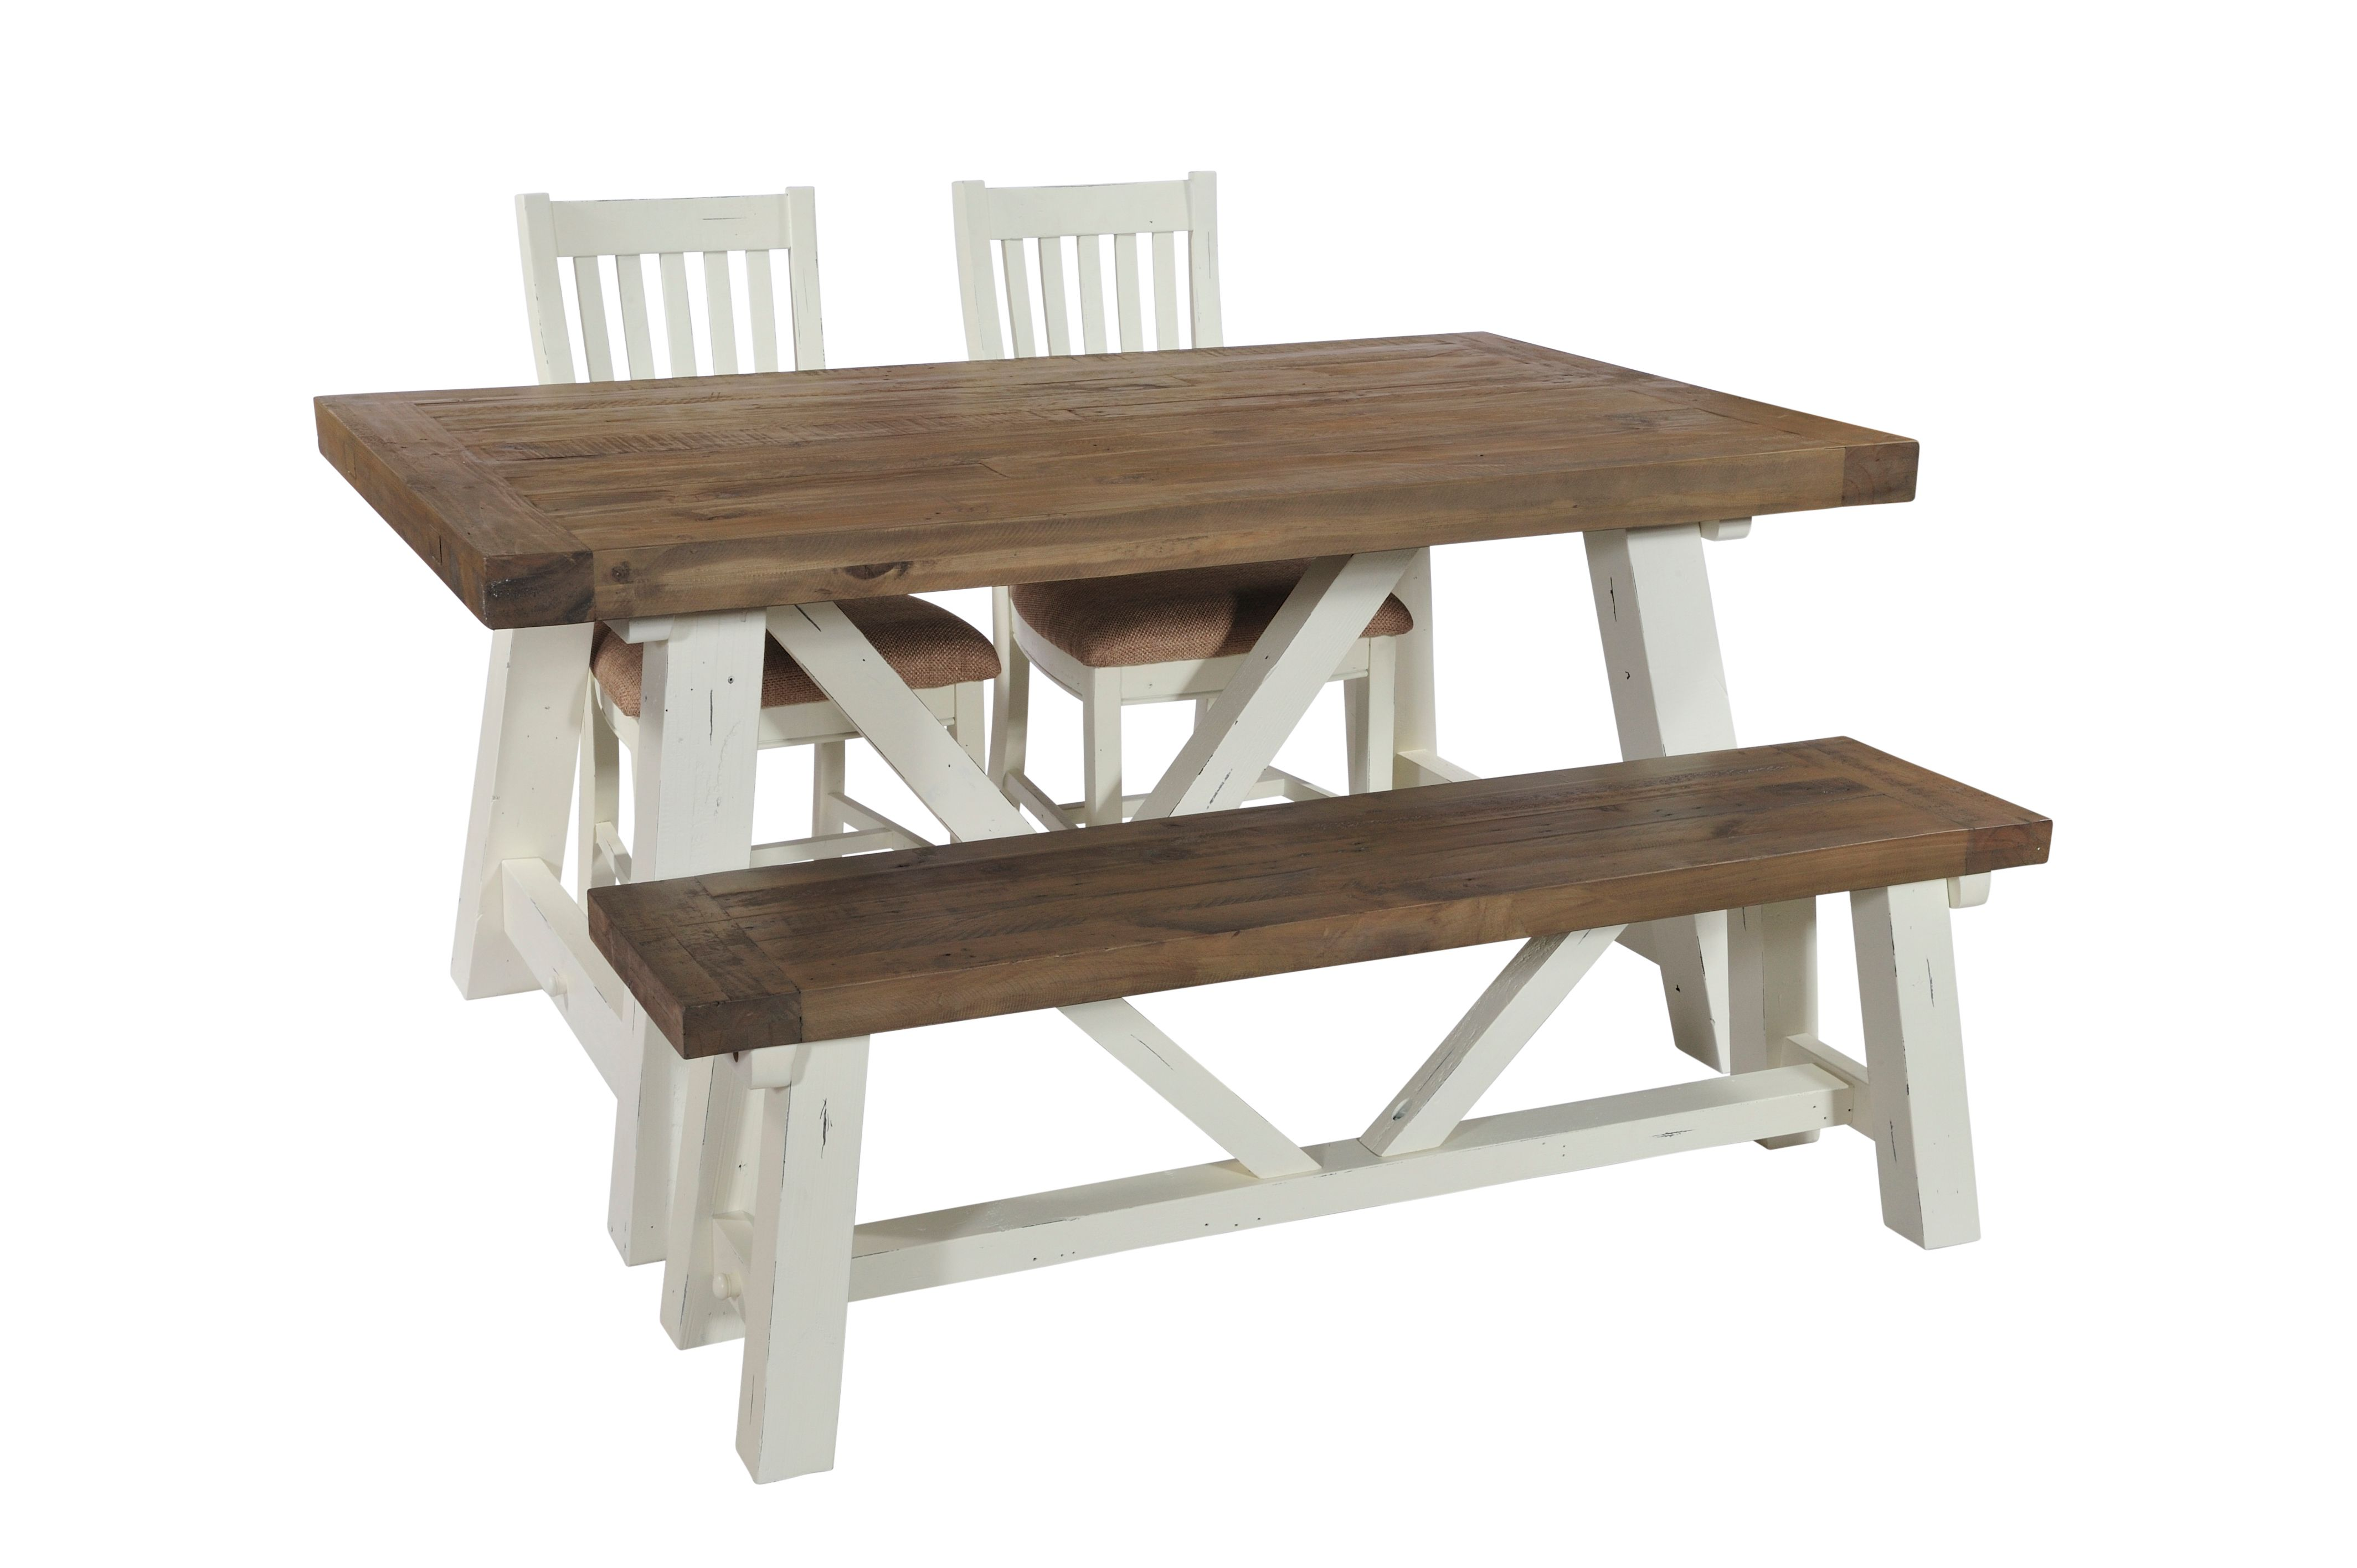 PURBECK 180 BENCH Distressed Paint & Driftwood